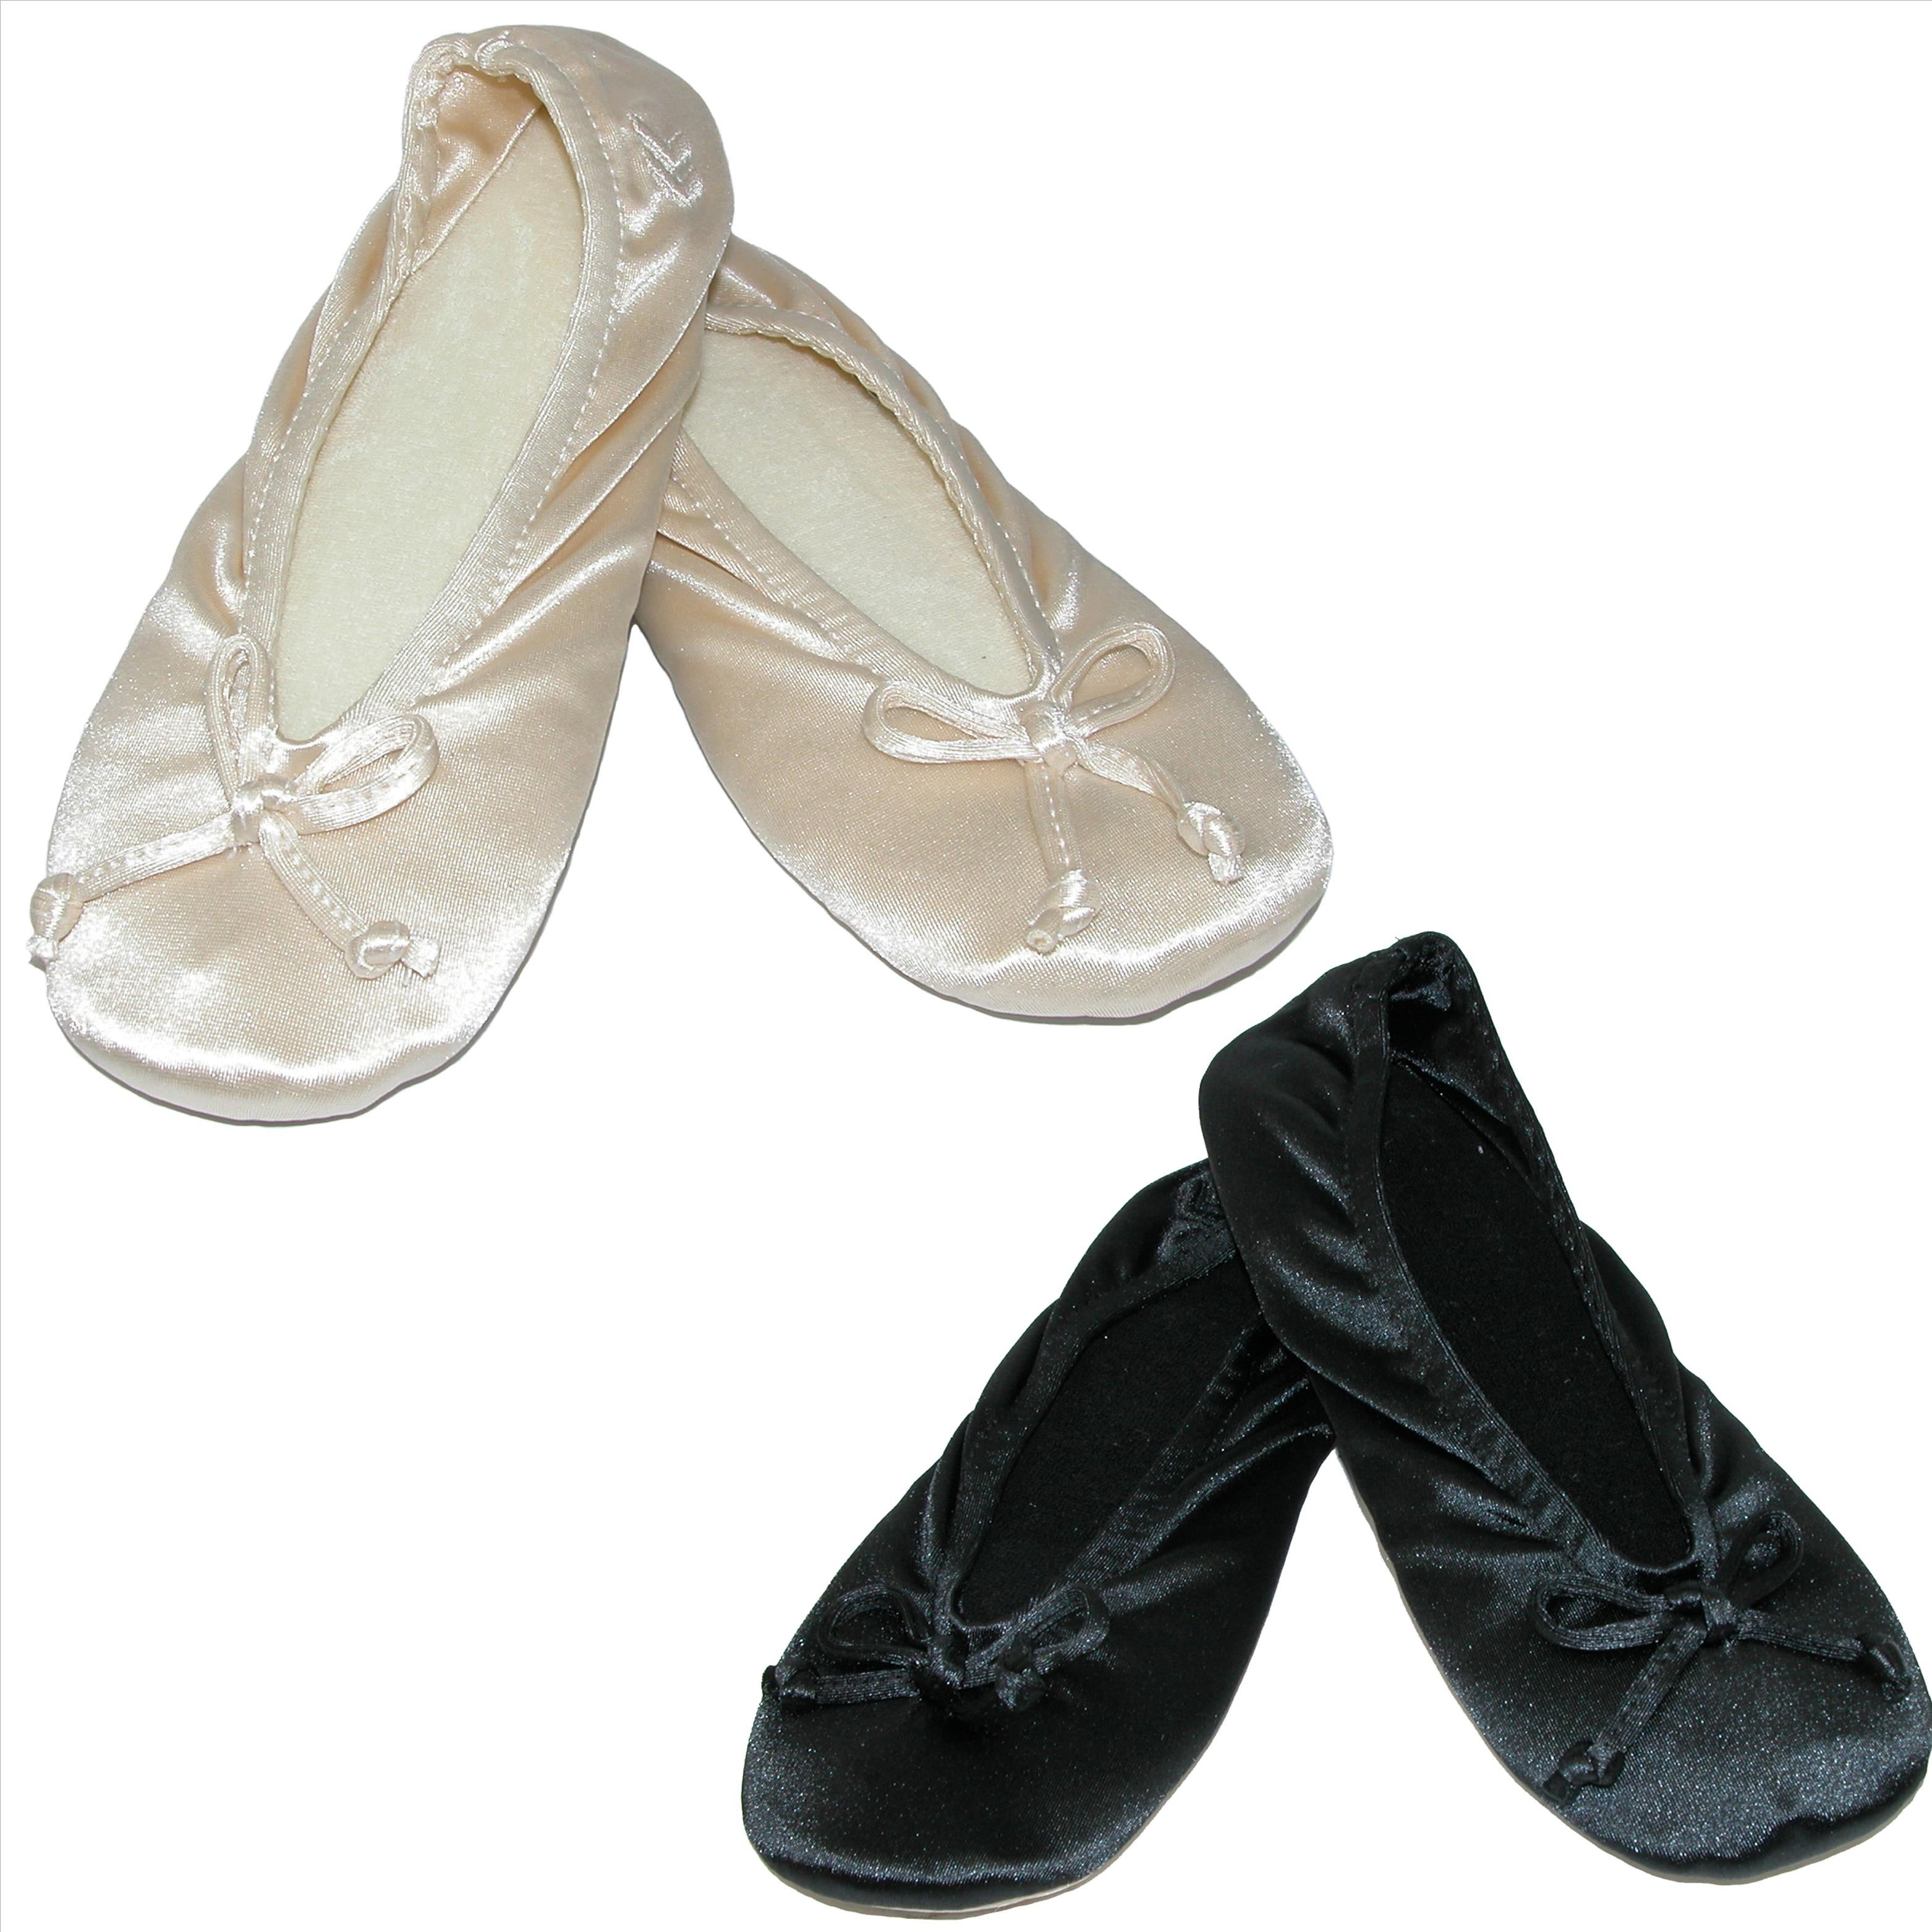 1f16d29db50 Shop Isotoner Women s Satin Plus Size Ballerina Slippers (Pack of 2 ...